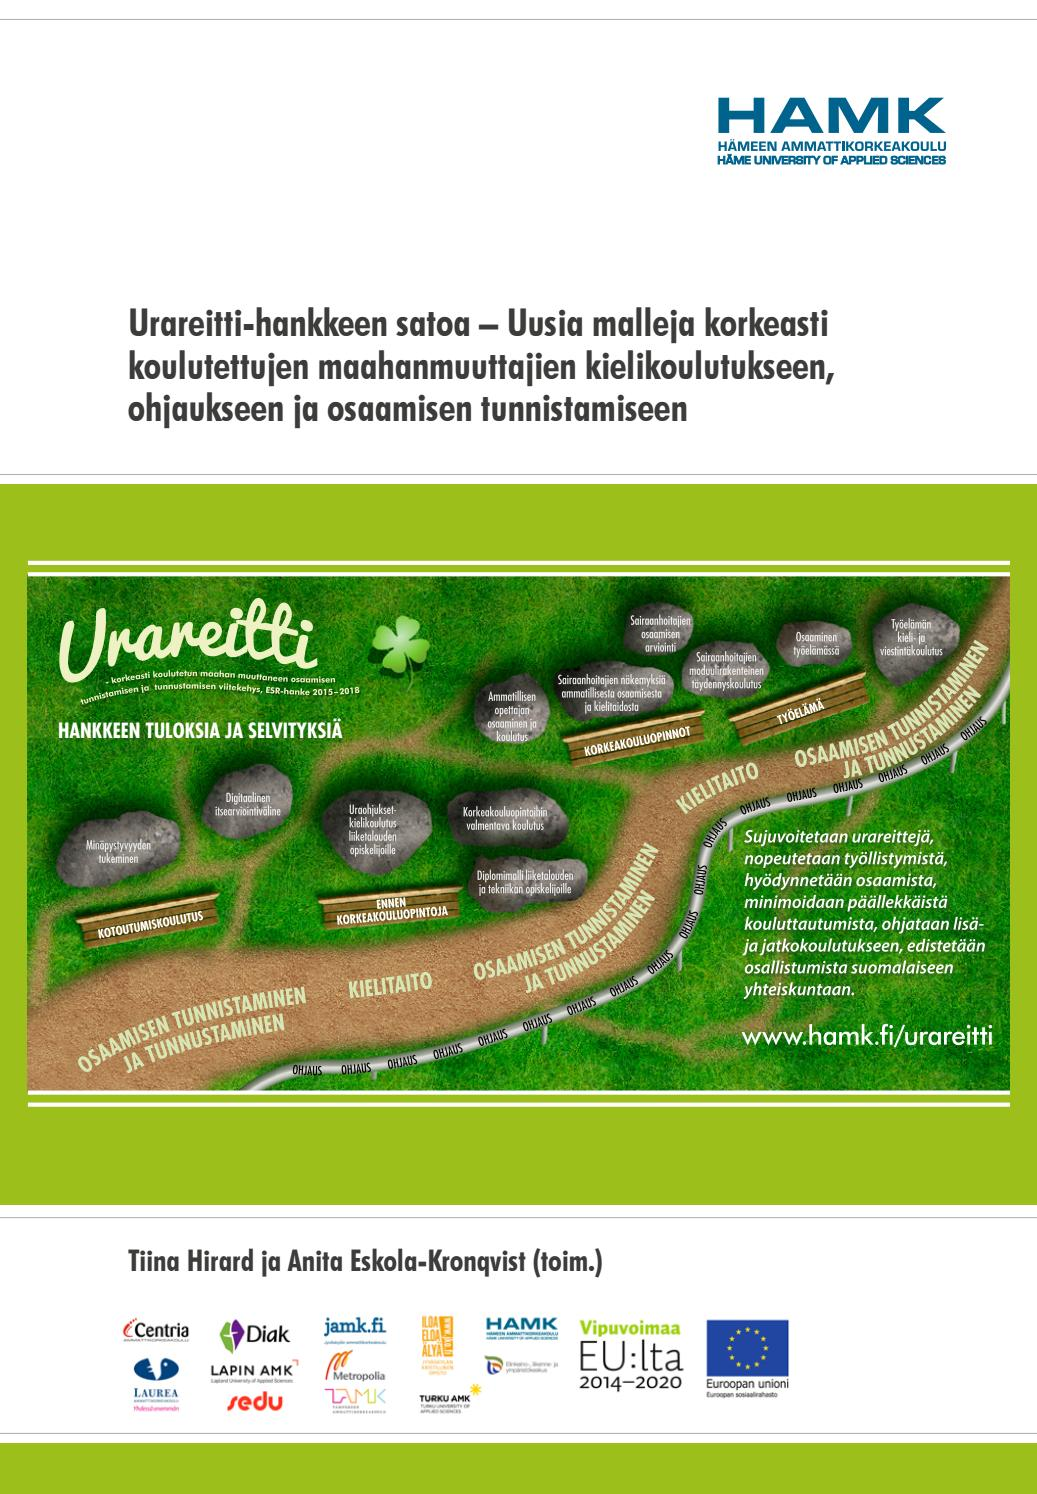 Urareitti-hankkeen satoa by HAMK Häme University of Applied Sciences - issuu 7cbabd7170